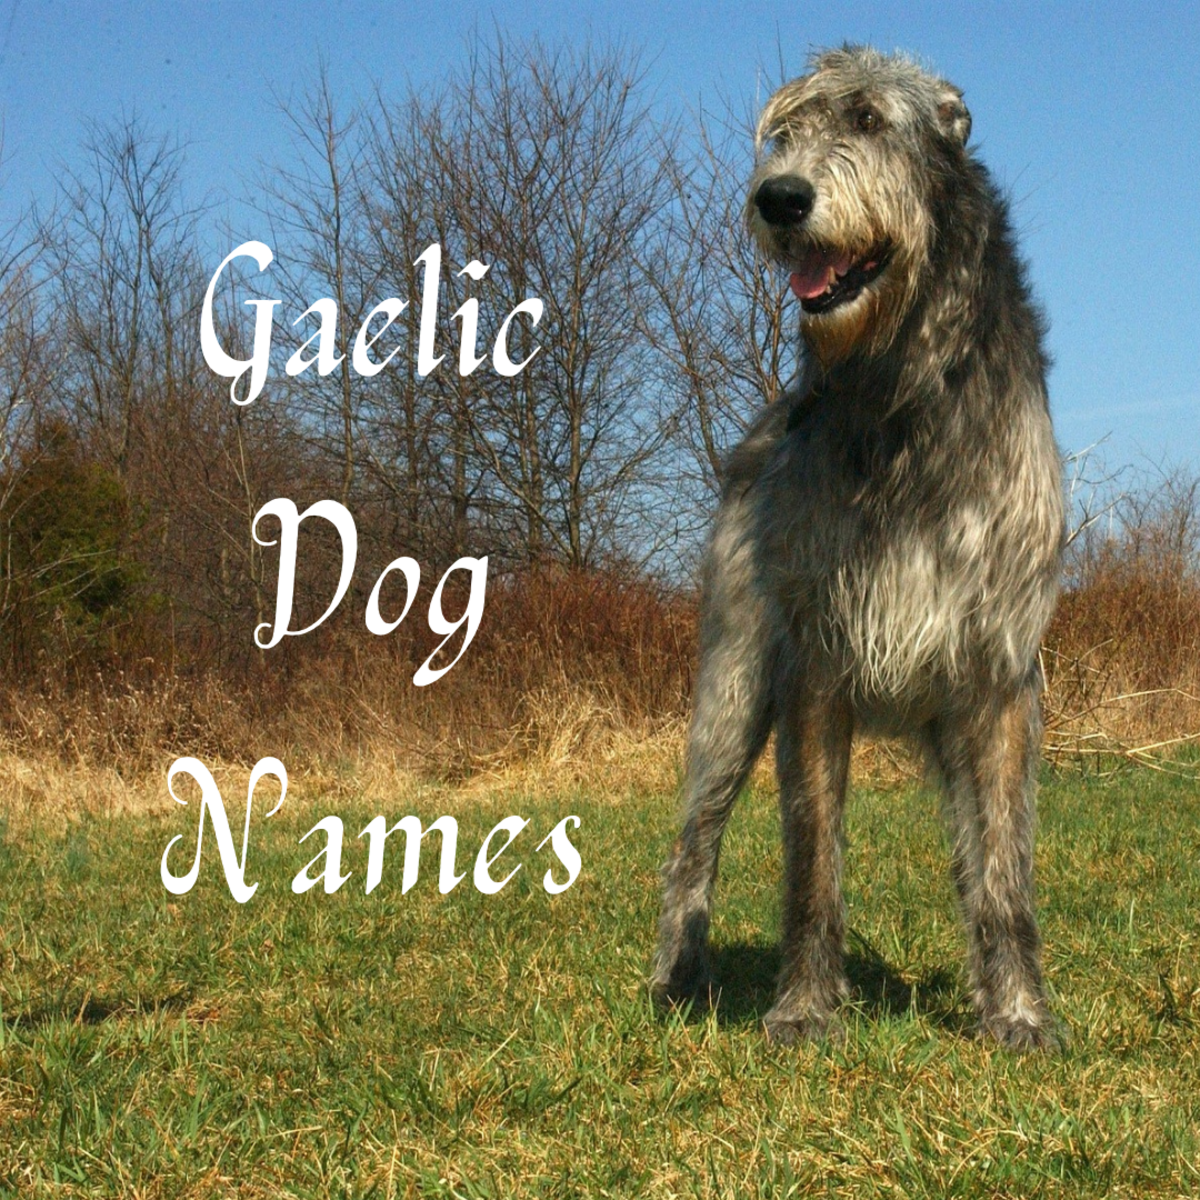 50+ Great Gaelic Dog Names for an Irish Wolfhound